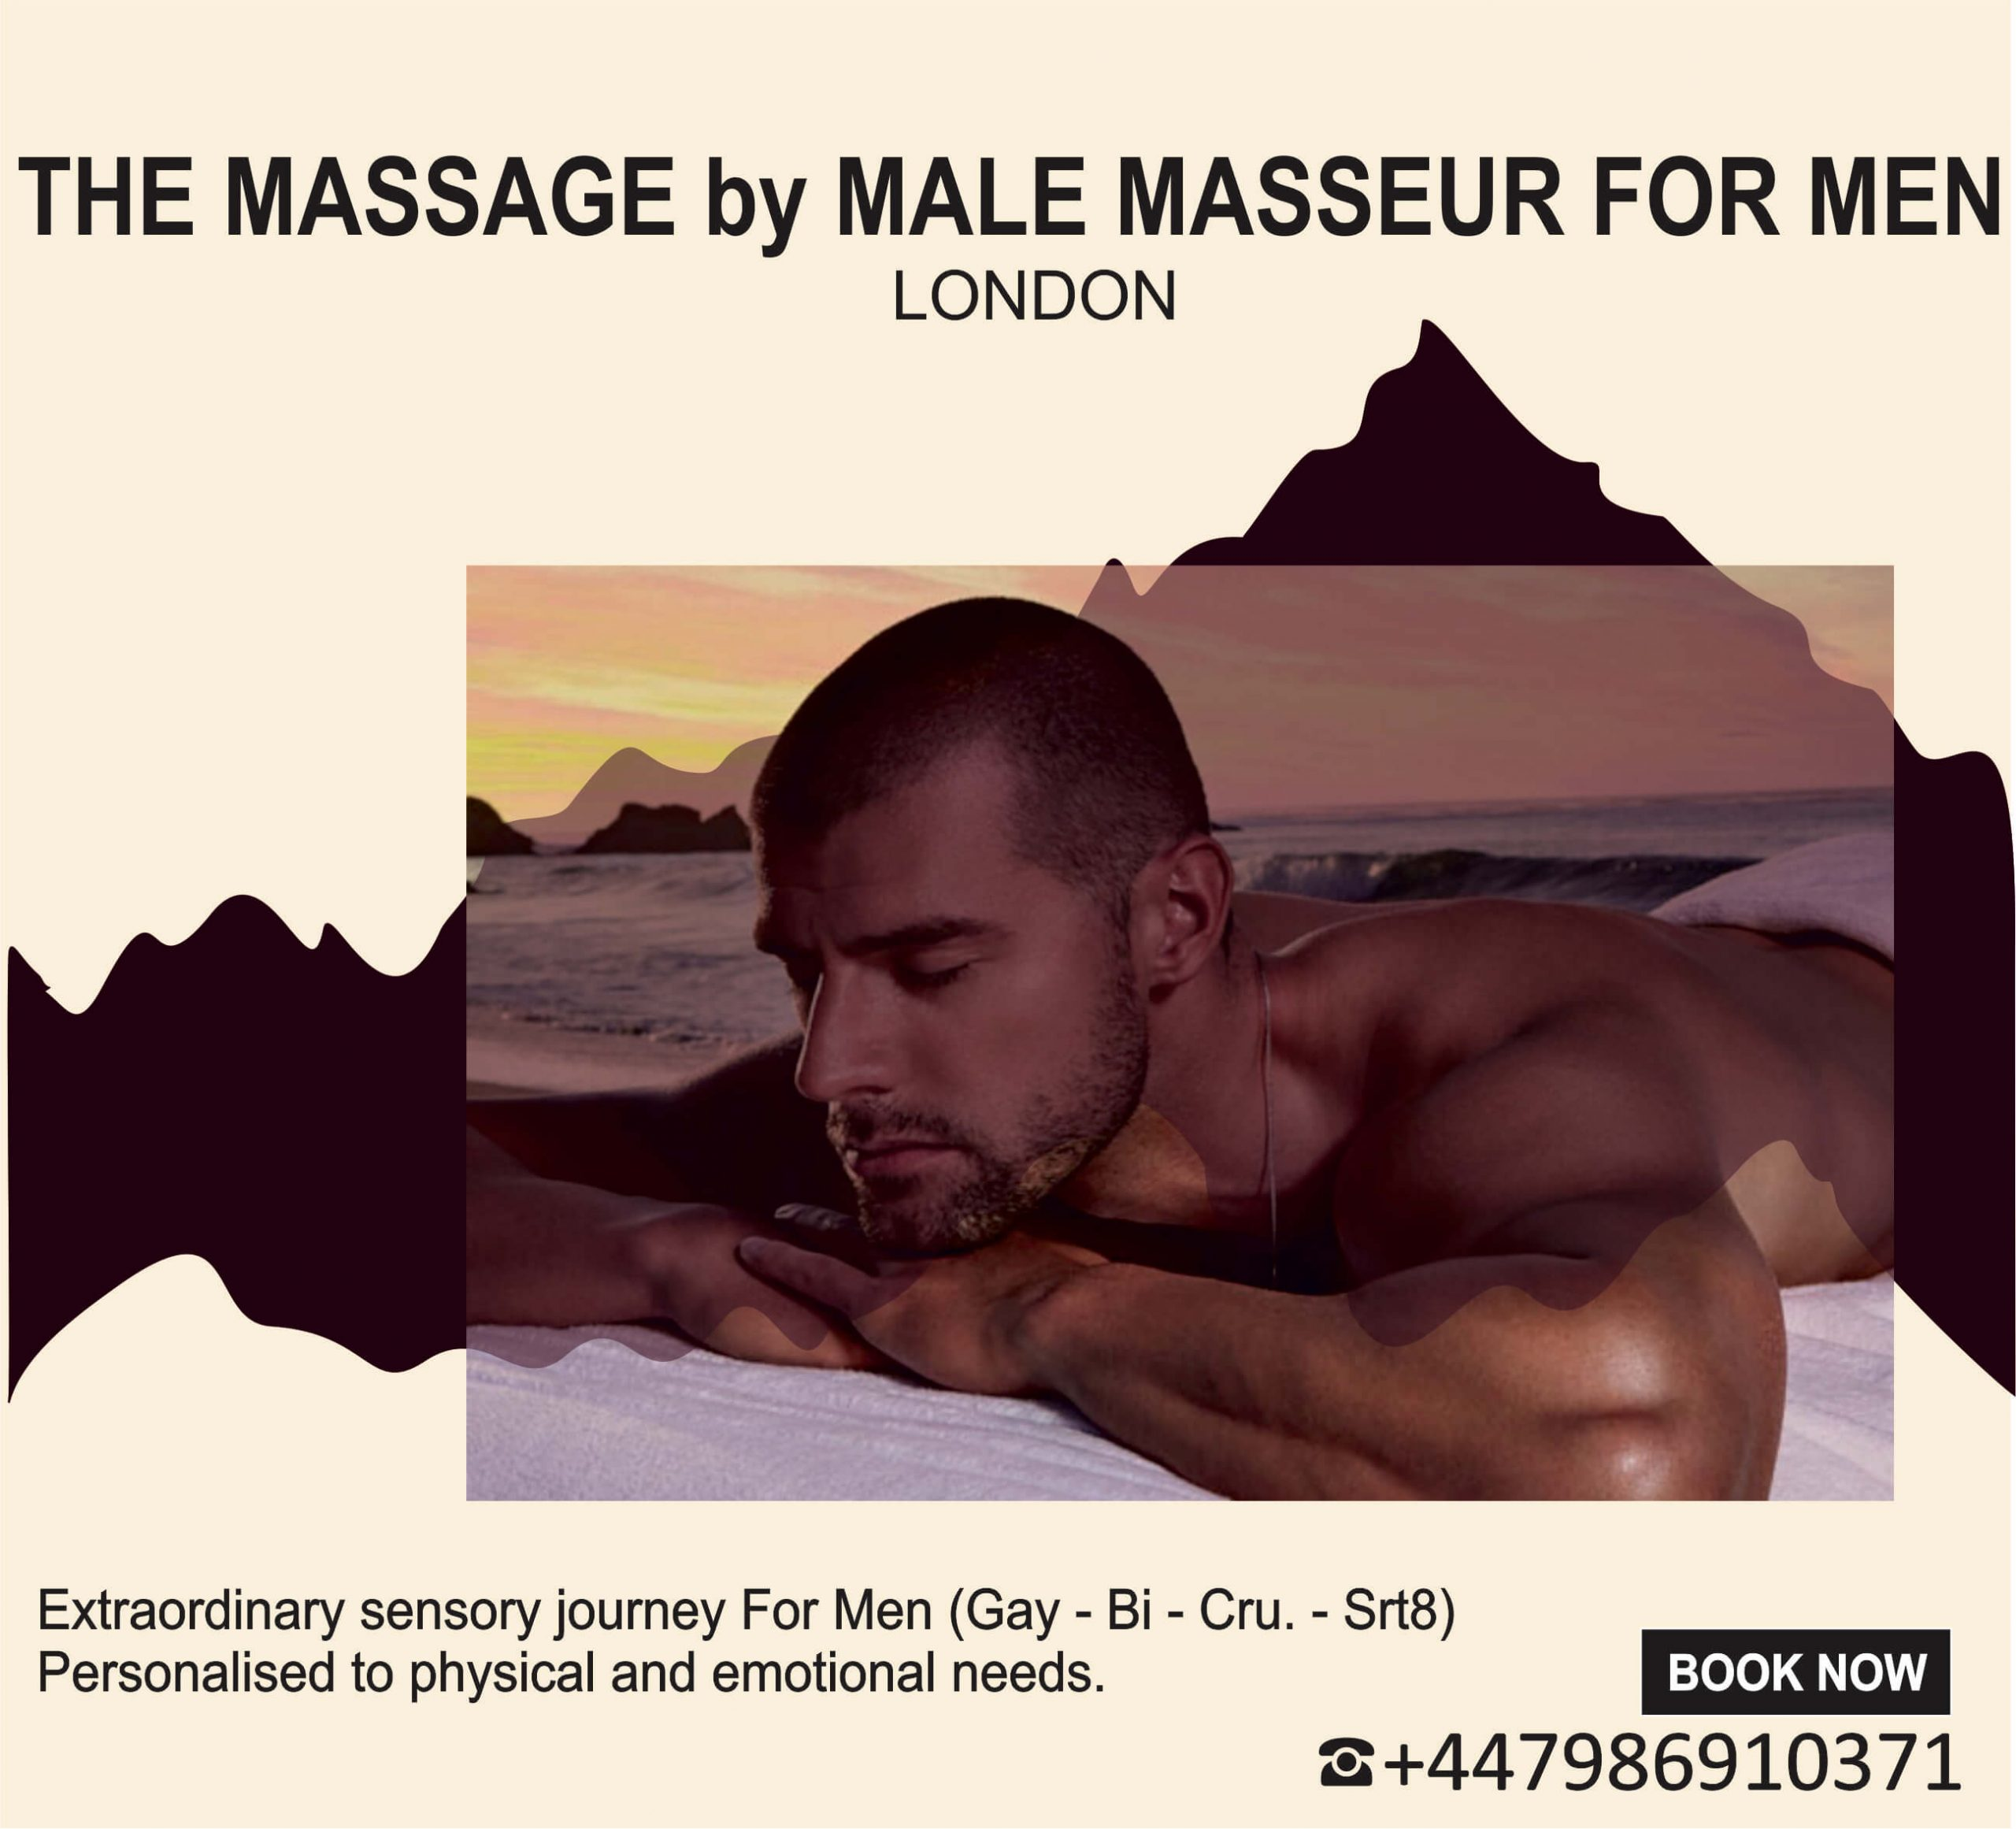 male massage london gay massage london male massage gay massage male to male massage best male massage full body massage male urban massage massage london male massage (15)